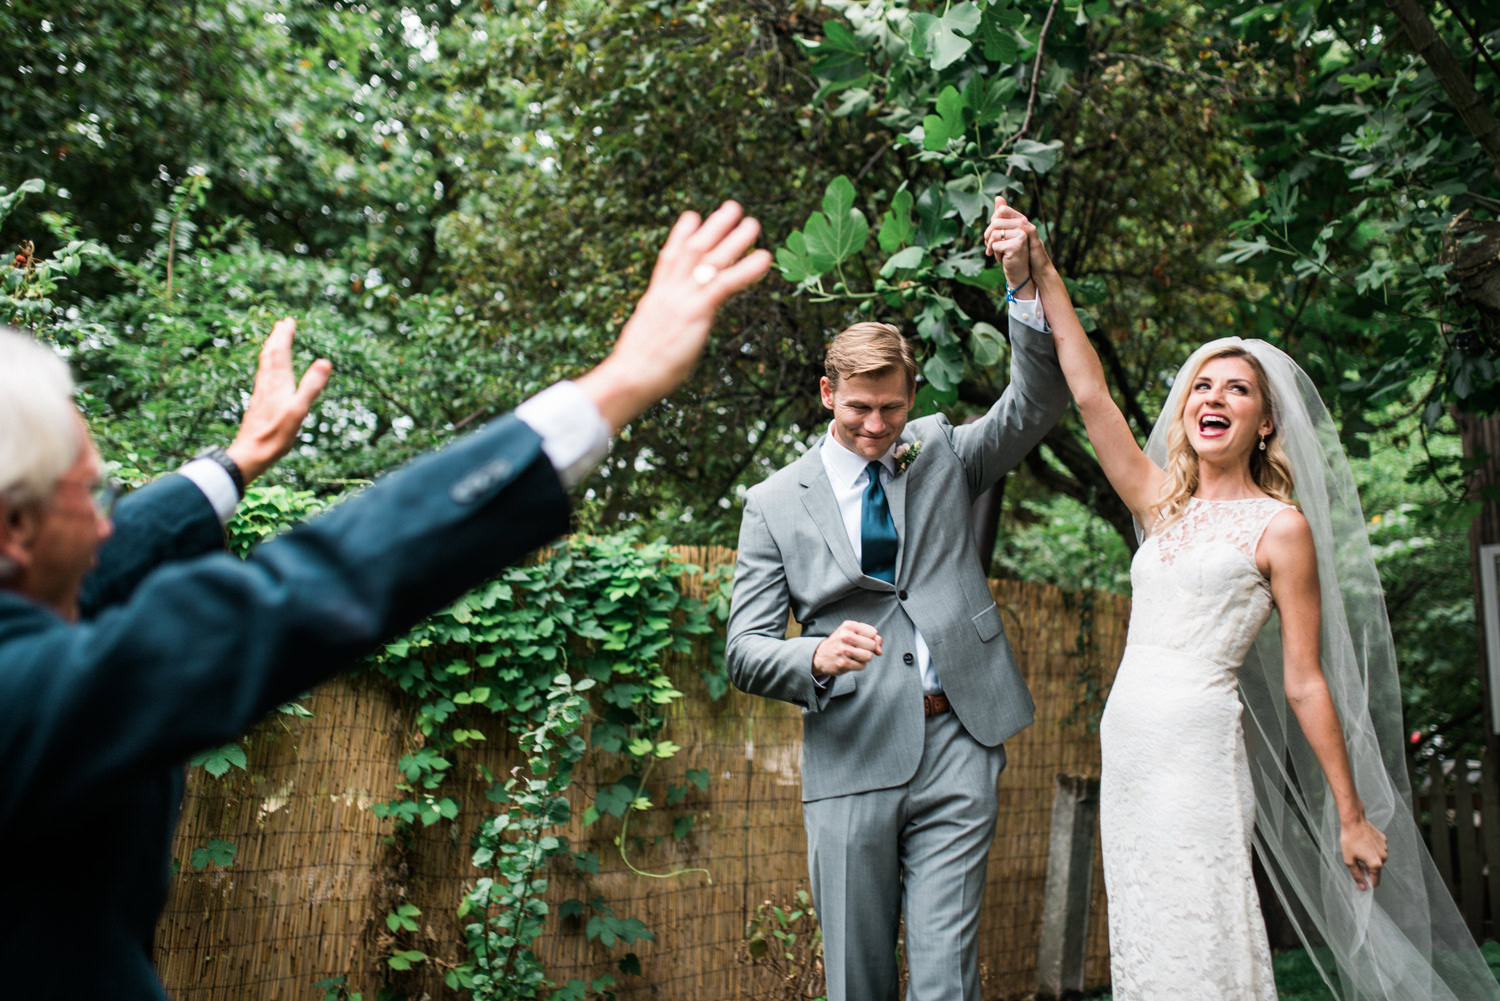 ryan-flynn-best-wedding-photography-2015-seattle-film-photographer-0033.JPG